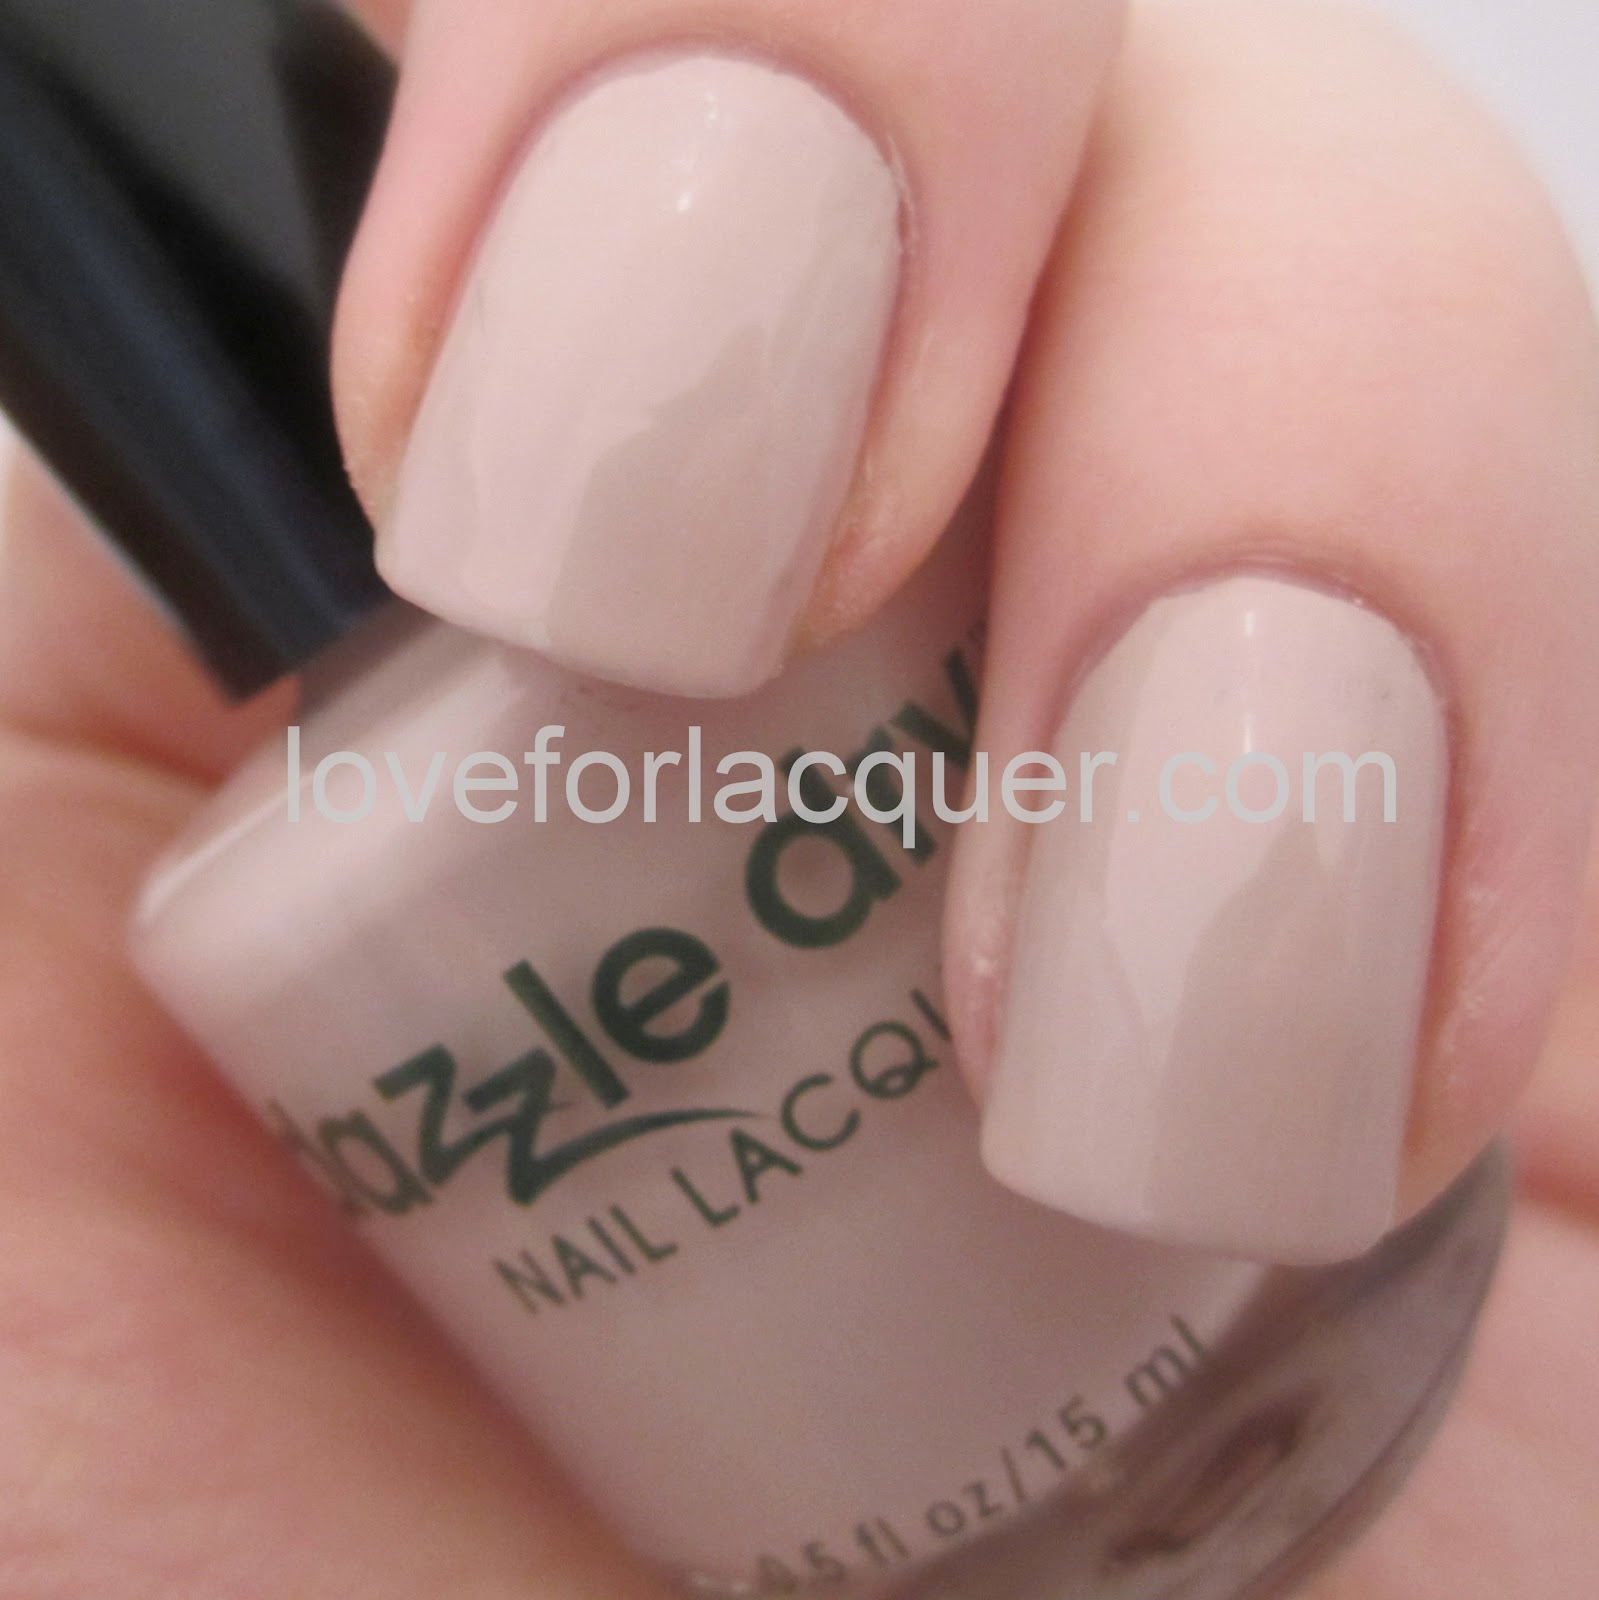 Dazzle Dry - Swatches & Nail Prep Kit Review - Love for Lacquer